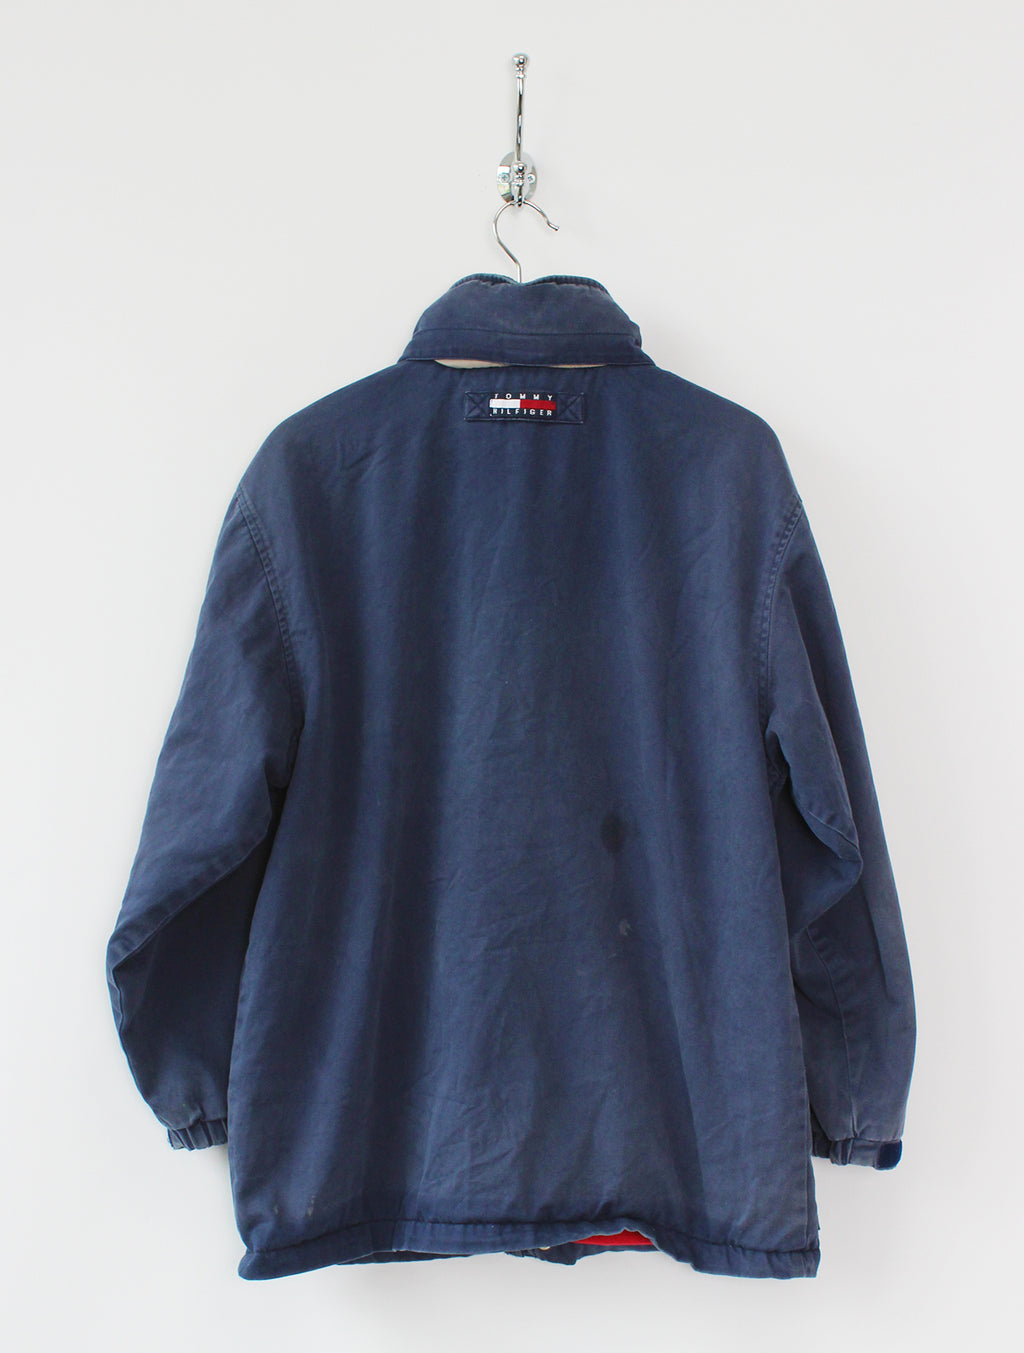 Women's Tommy Hilfiger Fleece Lined Jacket (XL)